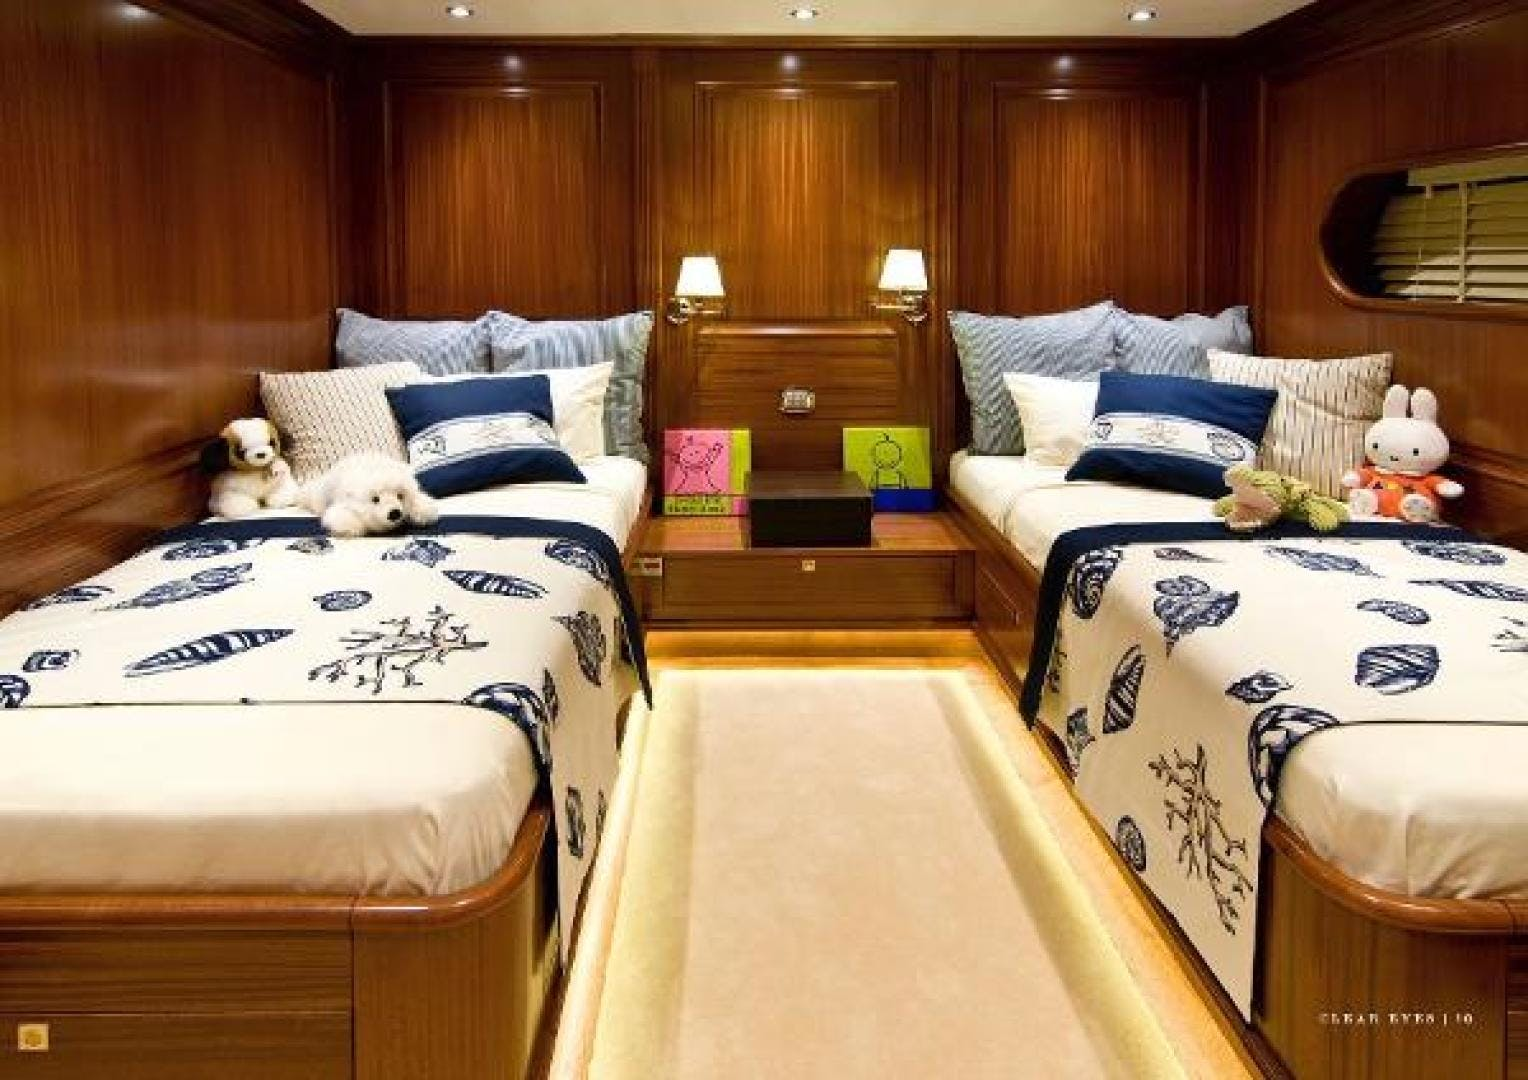 2010 Ketch 144' Pax Navi Yachts CLEAR EYES | Picture 1 of 22